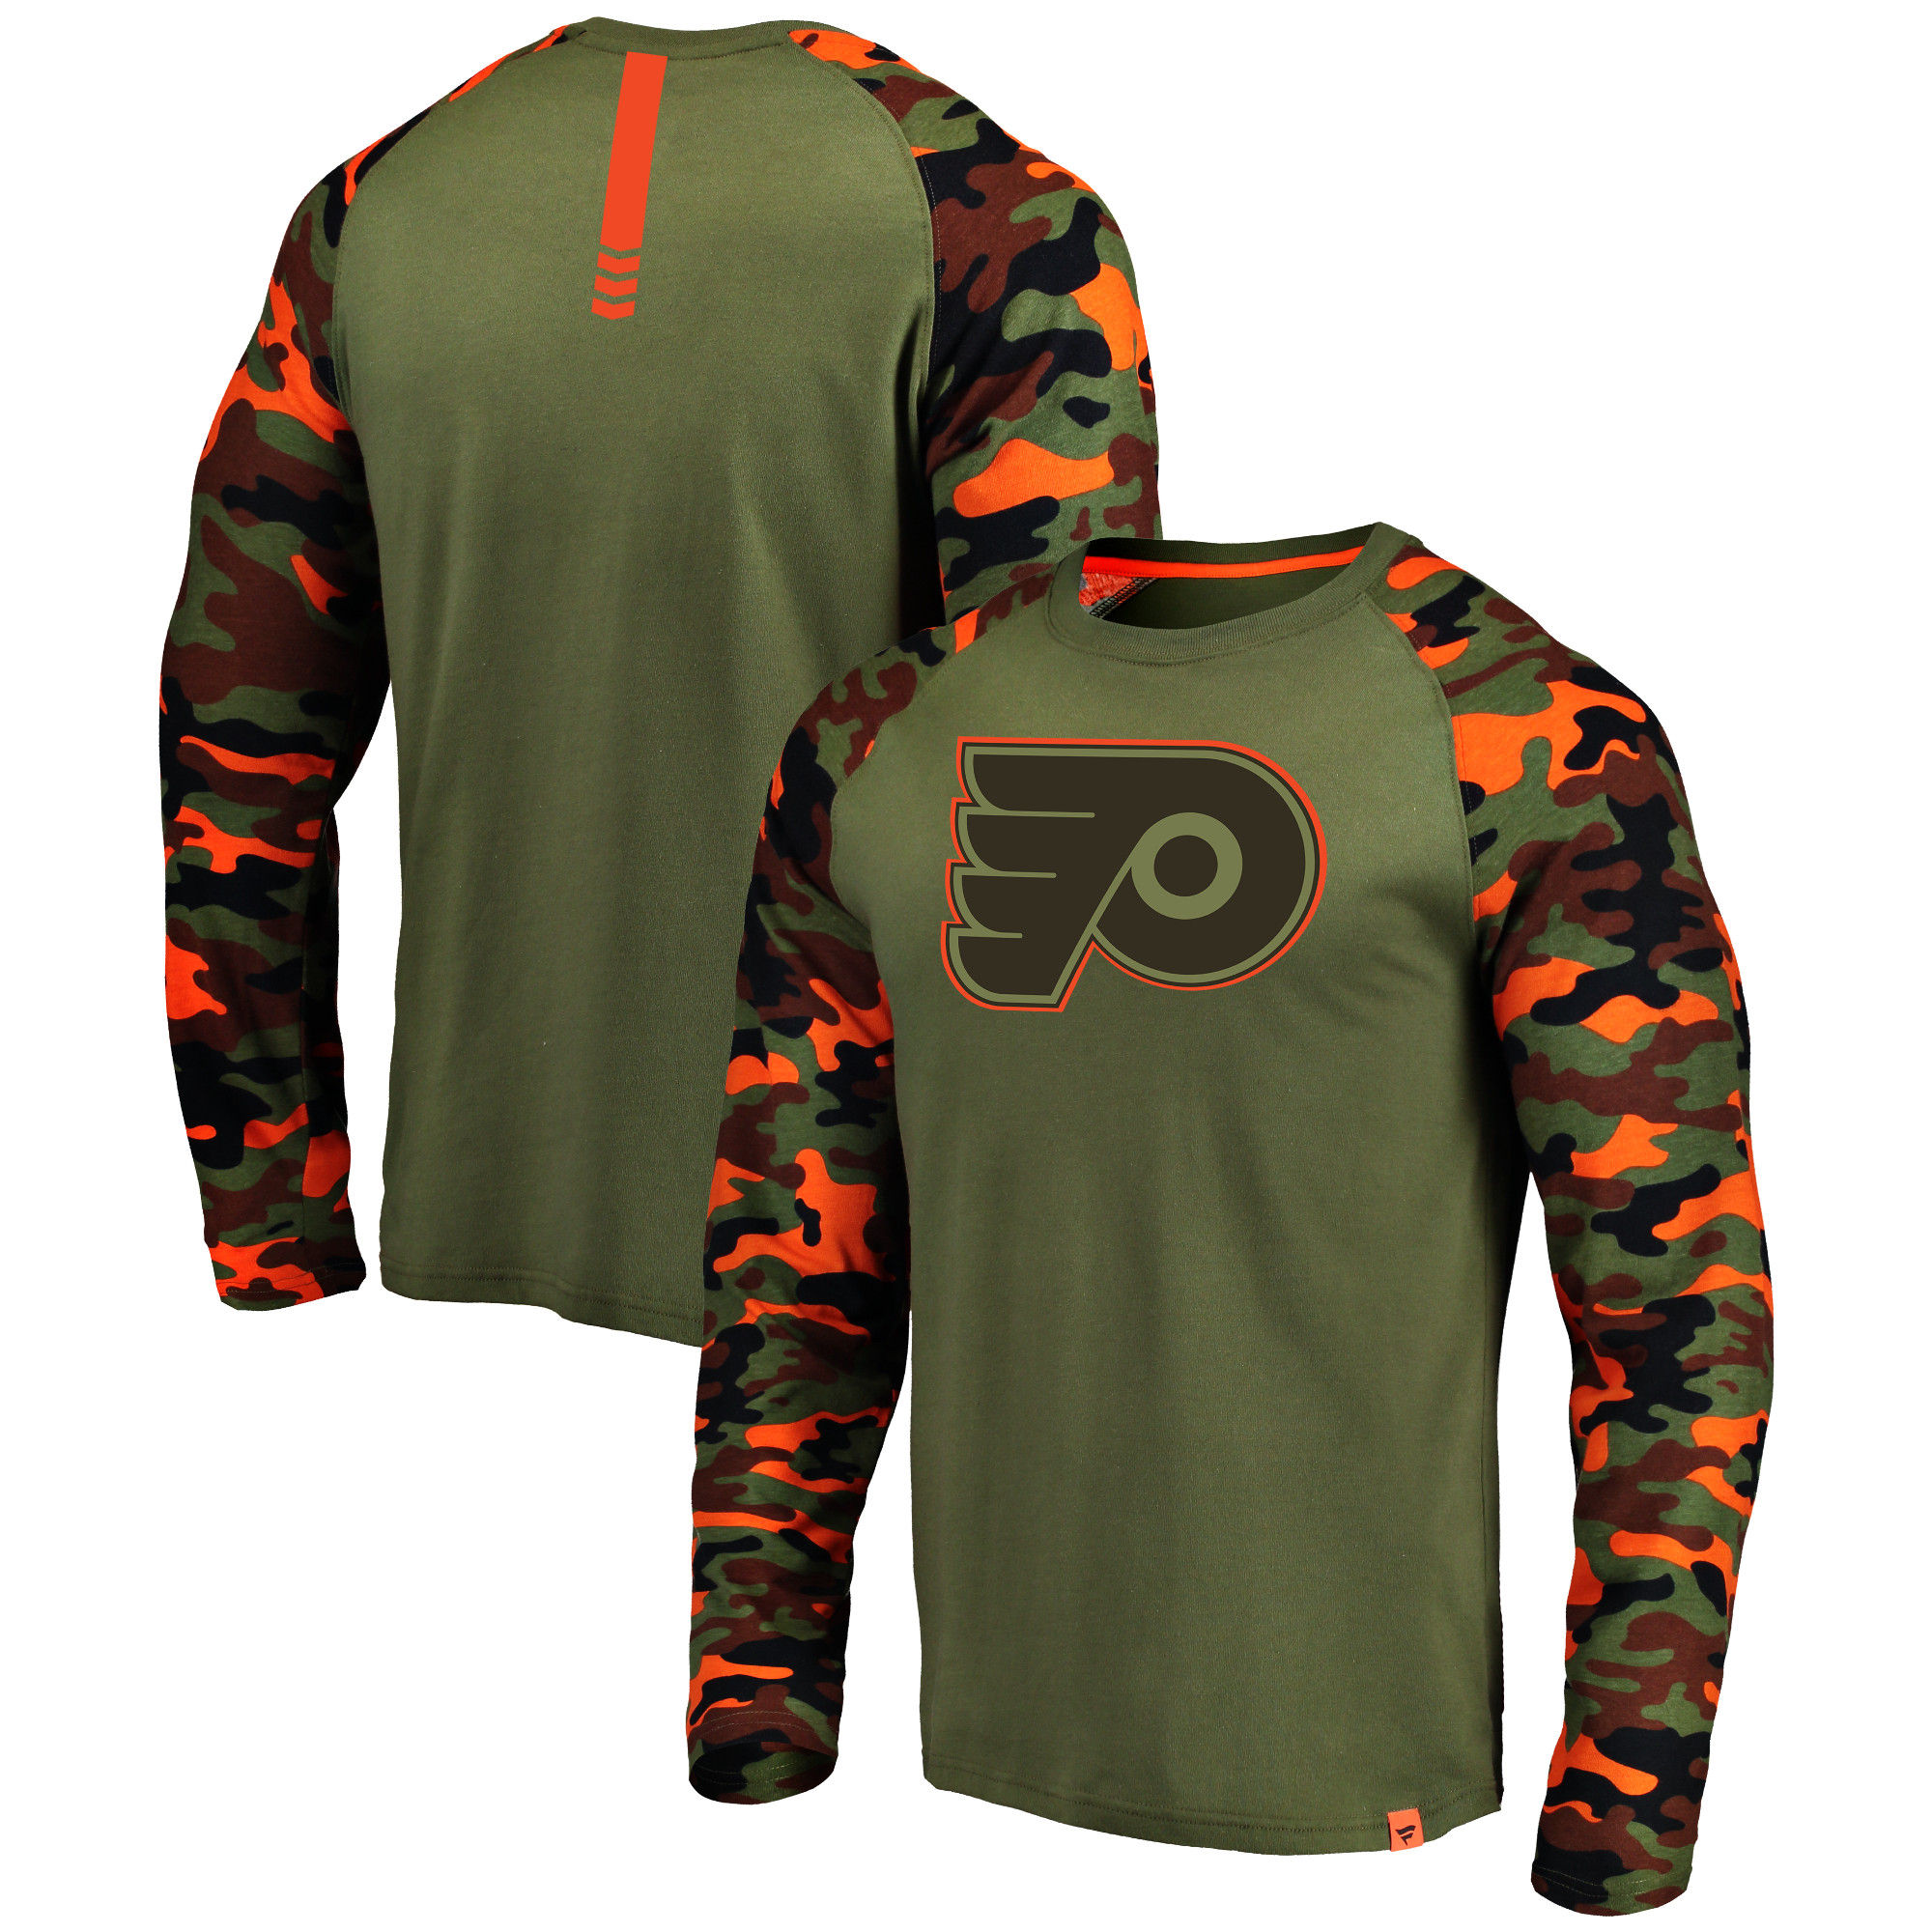 Philadelphia Flyers Fanatics Branded Olive/Camo Recon Long Sleeve Raglan T-Shirt